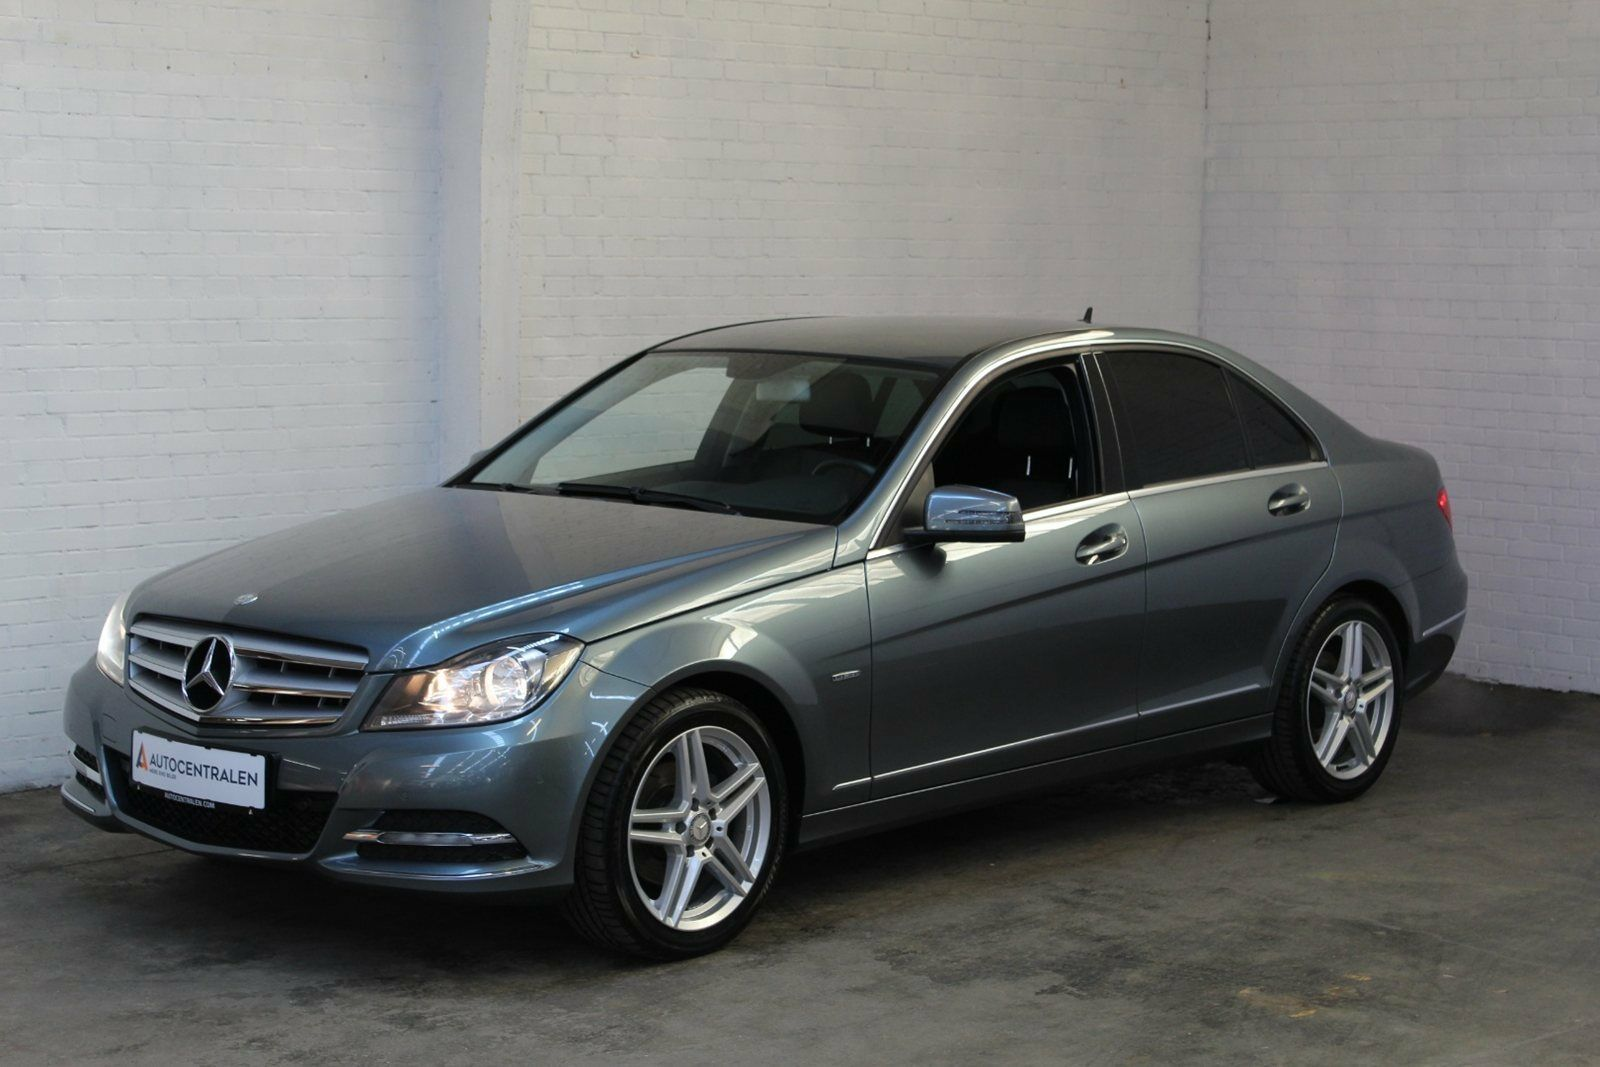 Mercedes C180 1,8 CGi Avantgarde BE 4d - 219.900 kr.